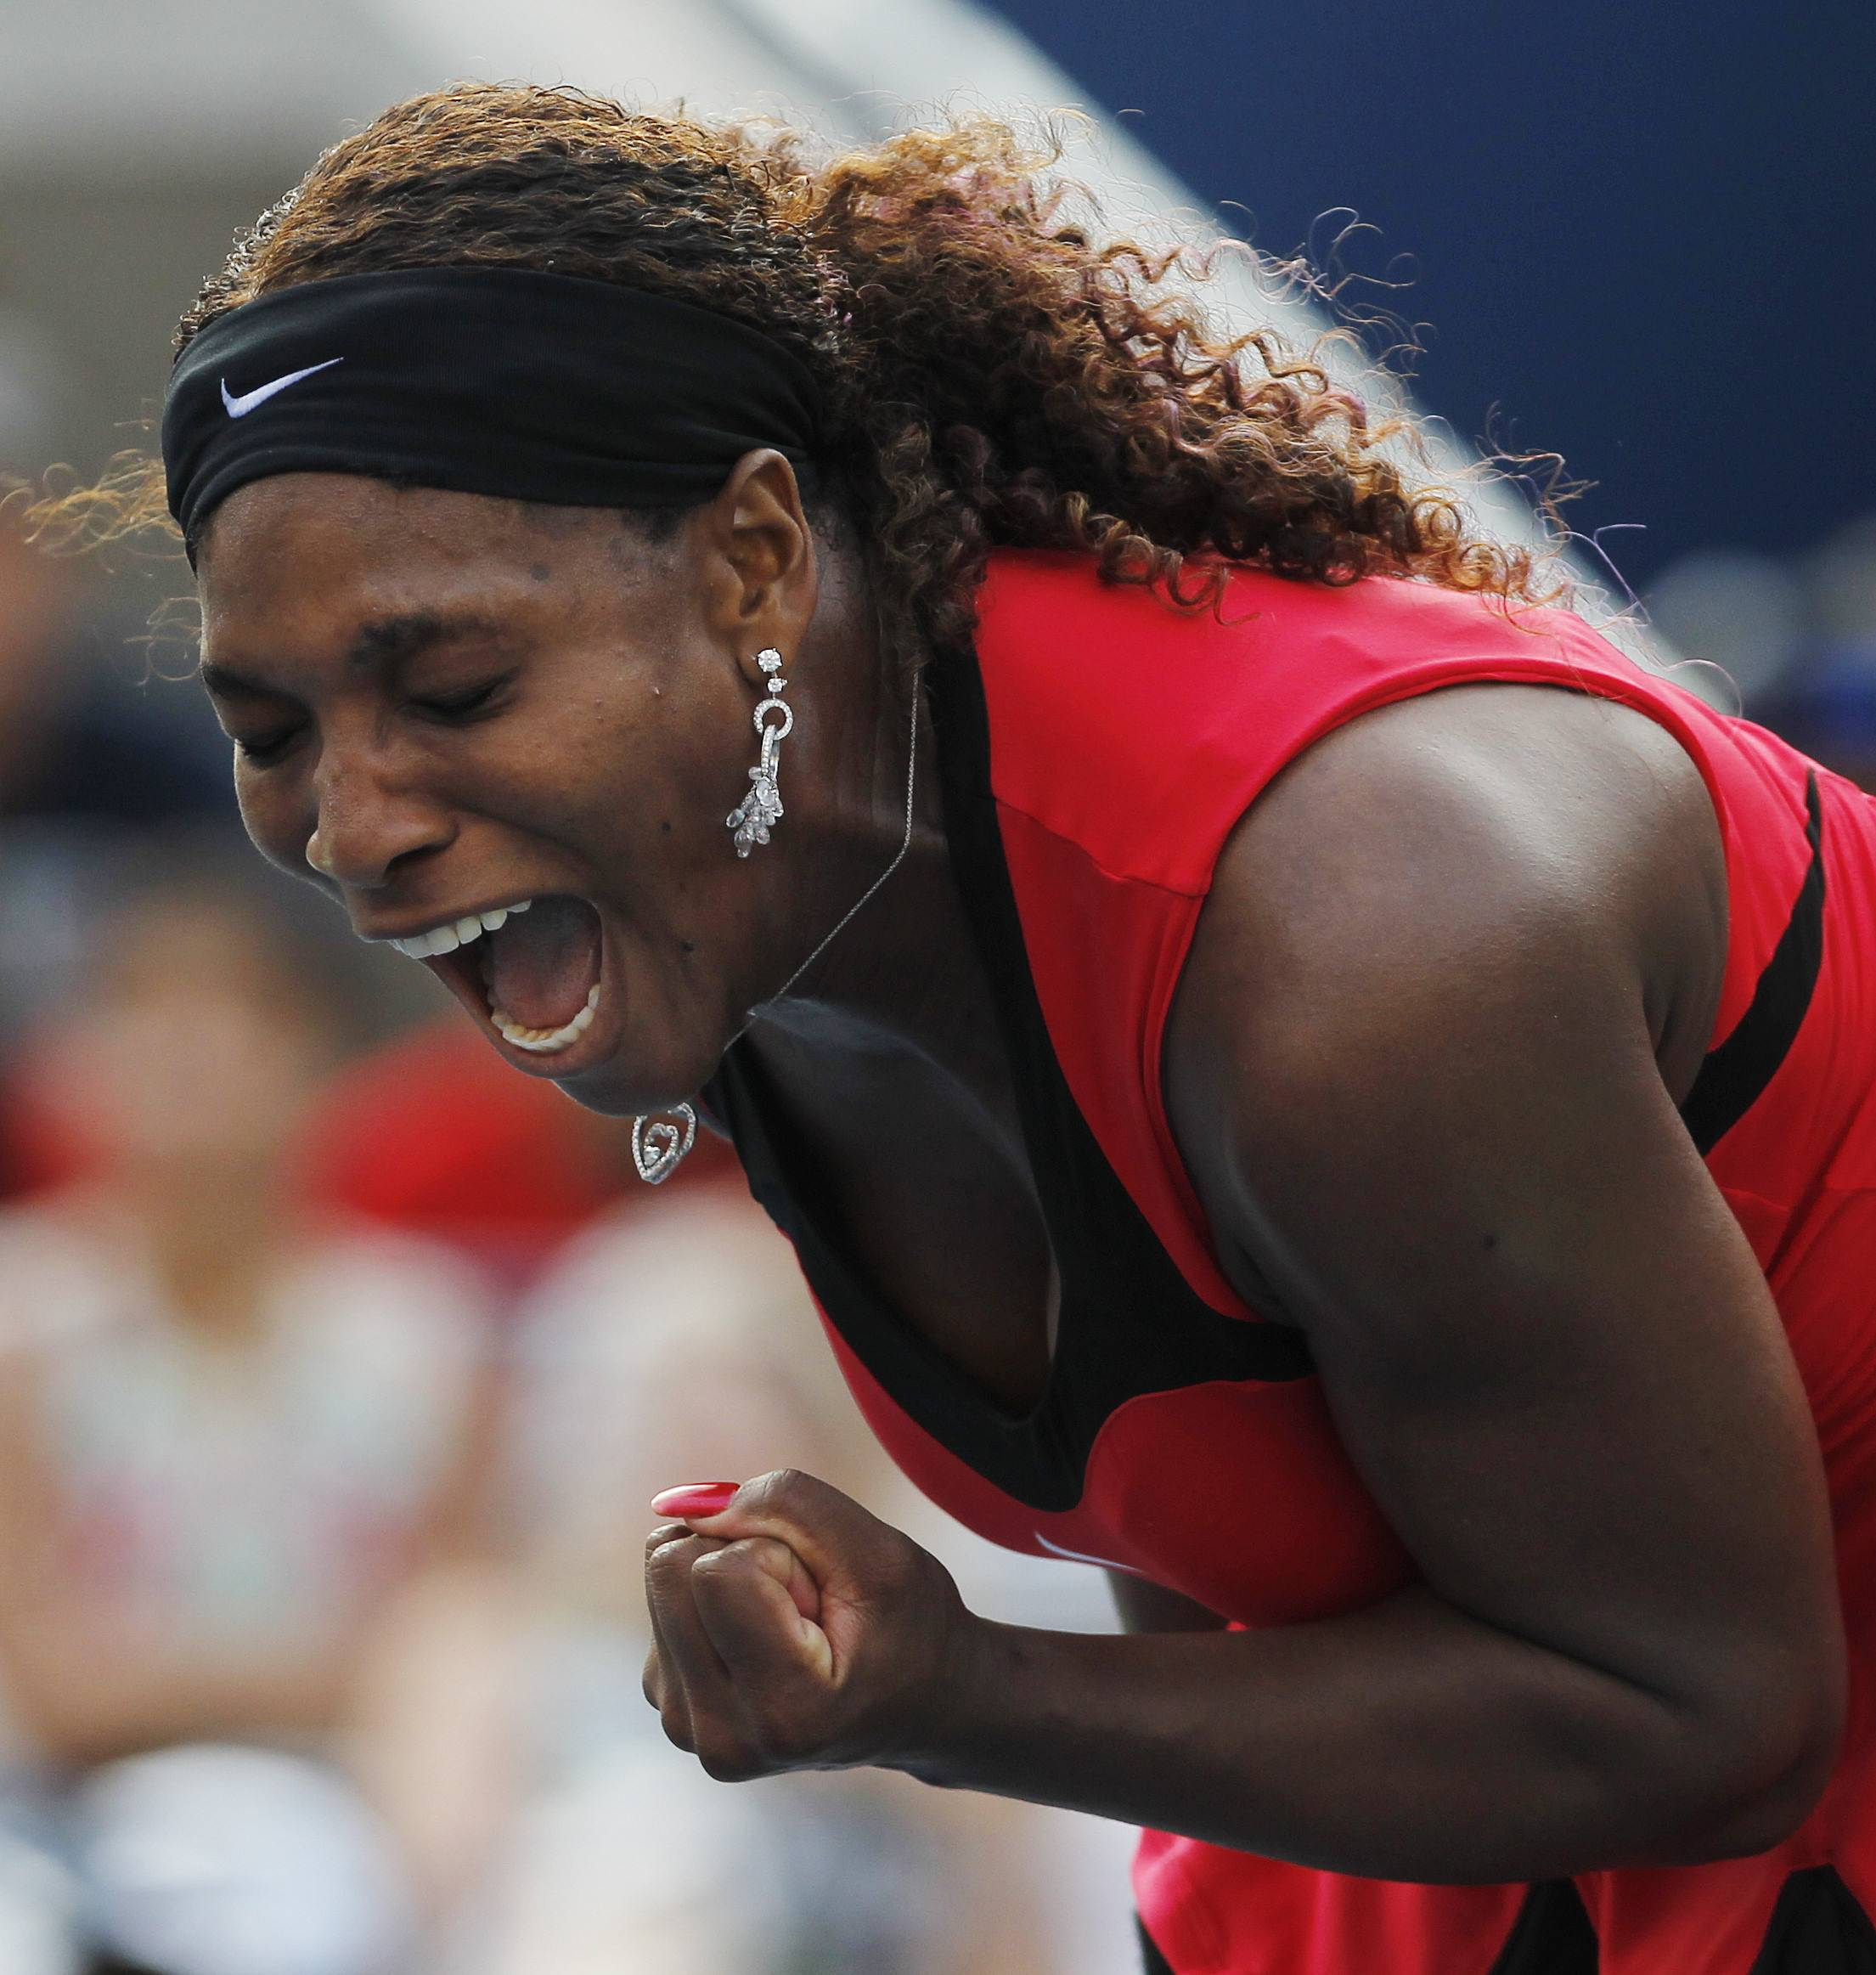 Serena Williams won her third-round match, 6-1, 7-6 (5) over fourth-seeded Victoria Azarenka, but not before losing her first four match points and getting pushed to the limit in the second set.